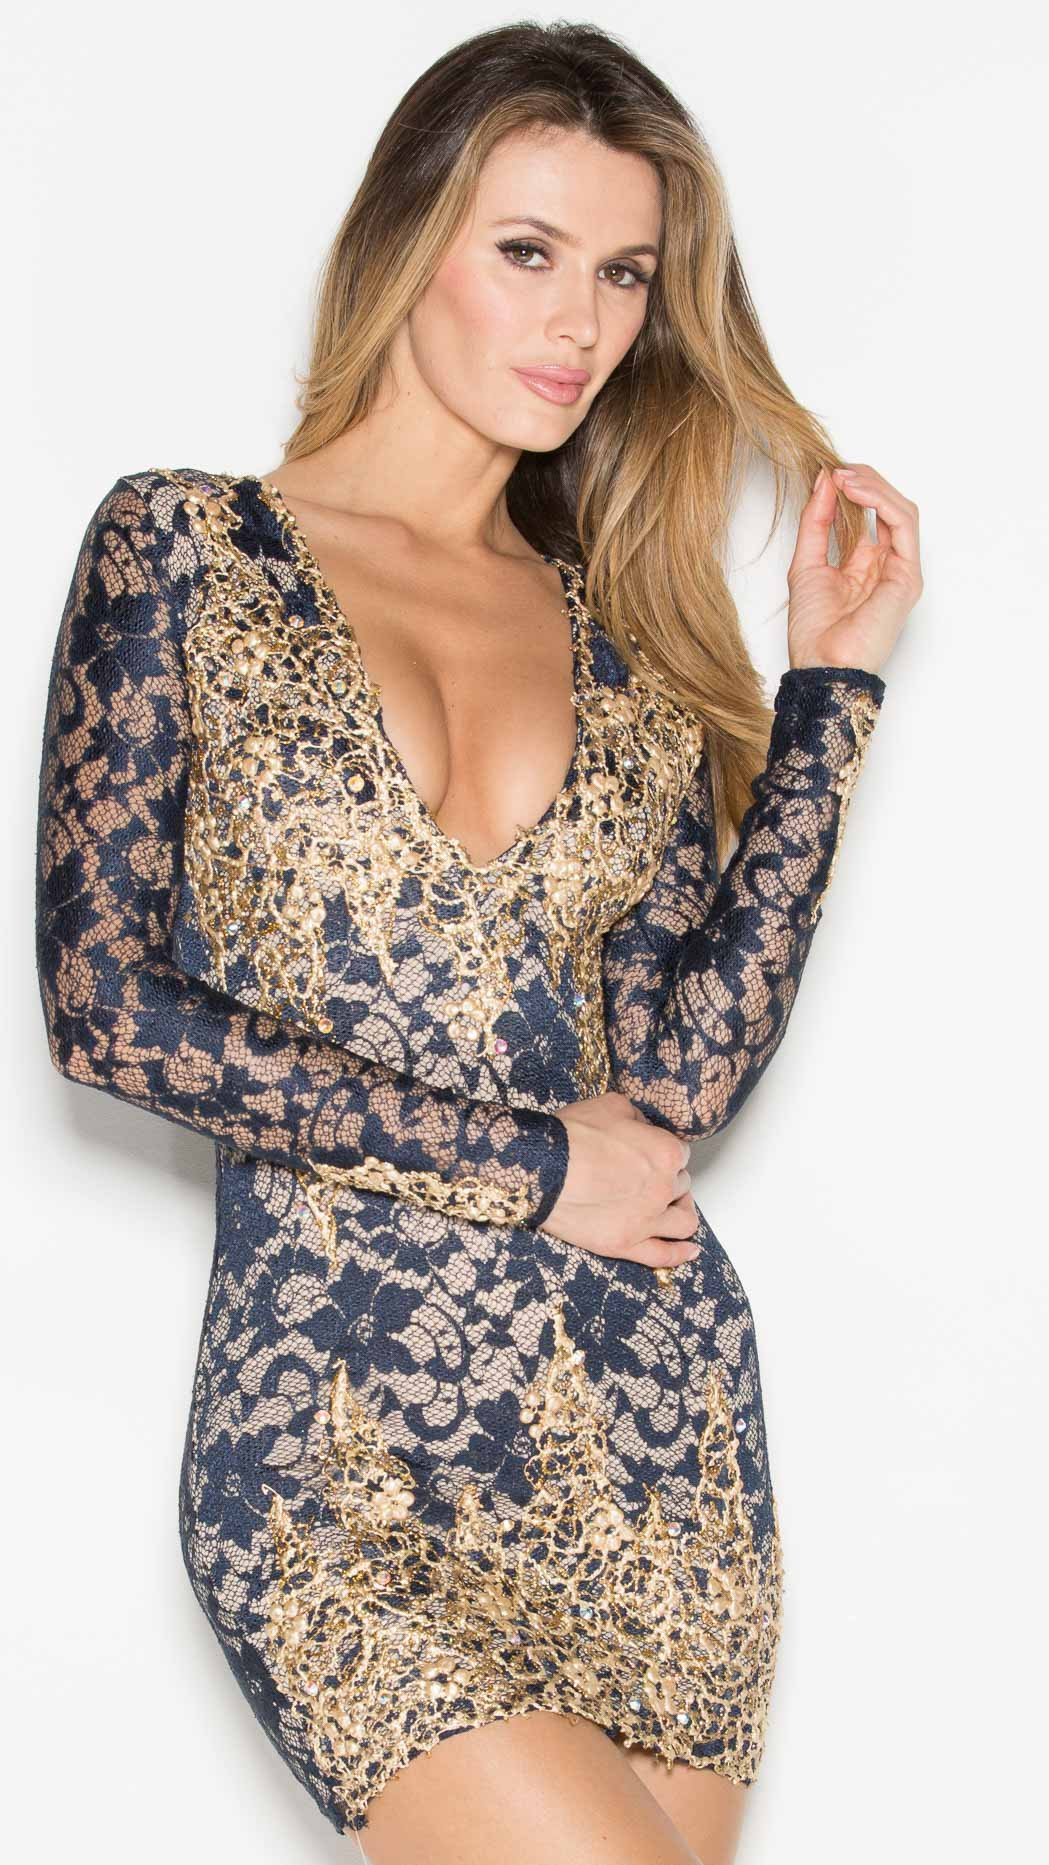 ADDISON LACE DRESS IN NAVY BLUE WITH GOLD - HOLT